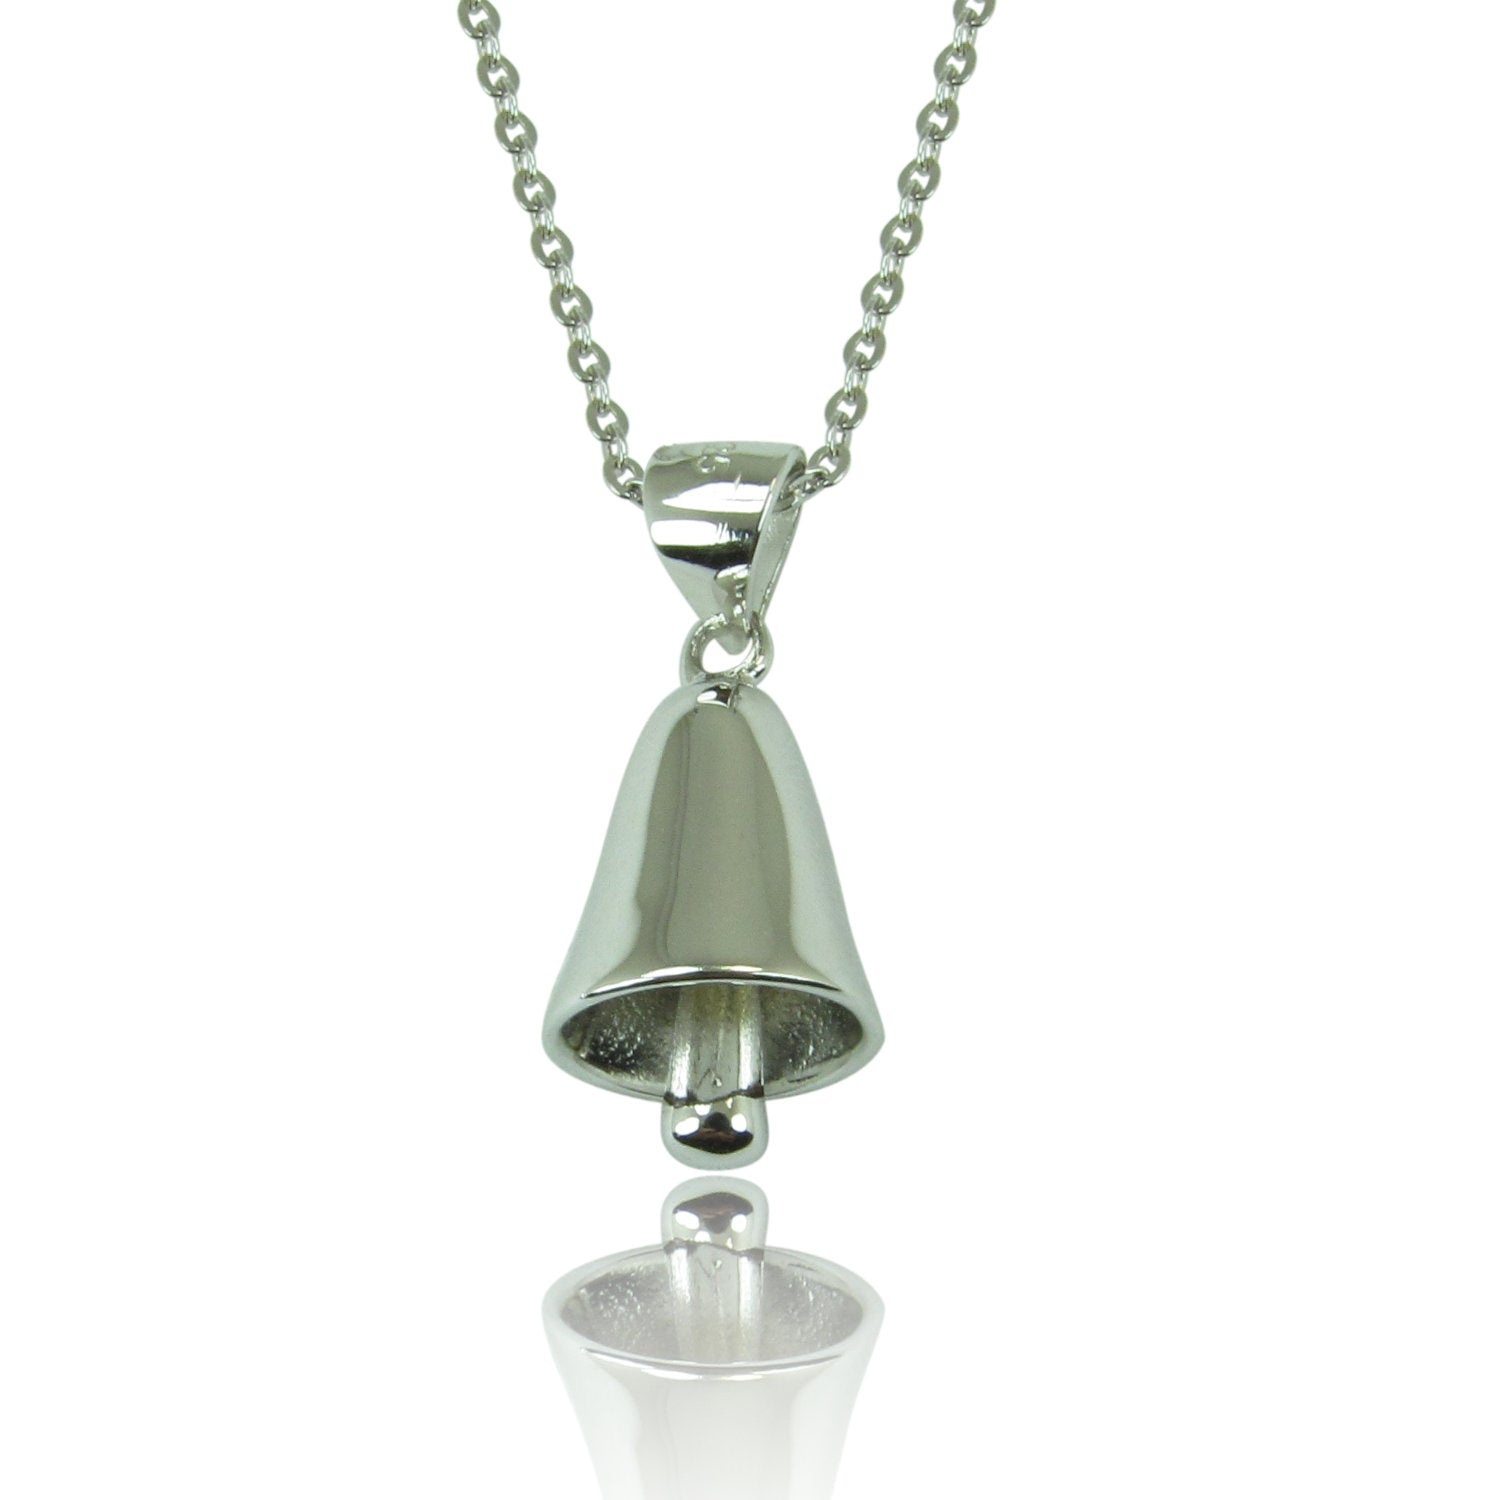 HOLIDAY BELL STERLING SILVER NECKLACE